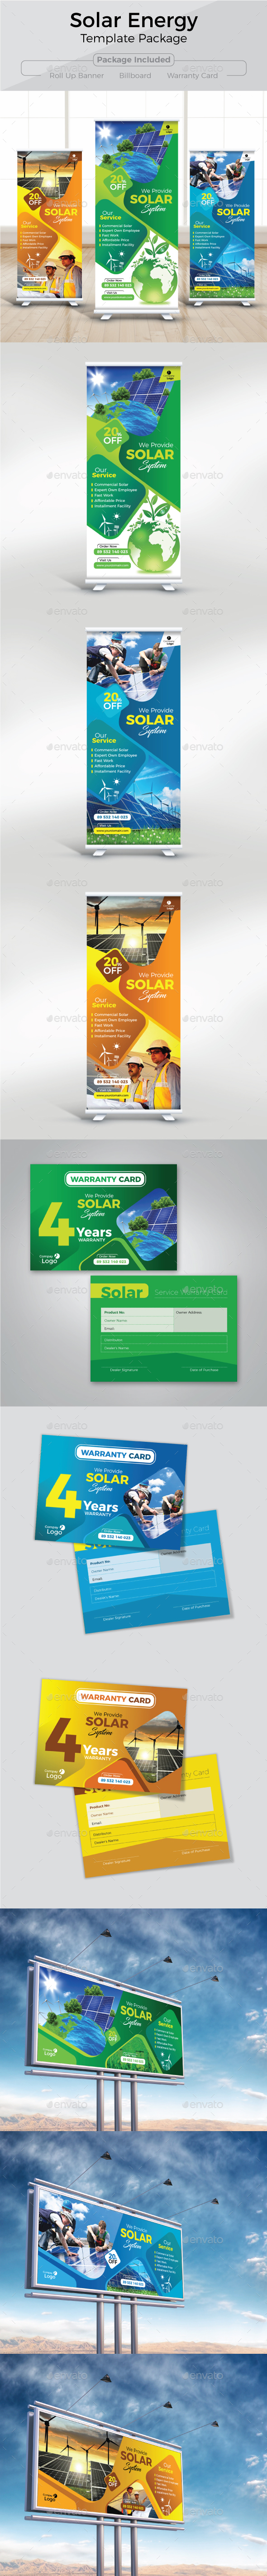 Solar Energy Template Package - Commerce Flyers